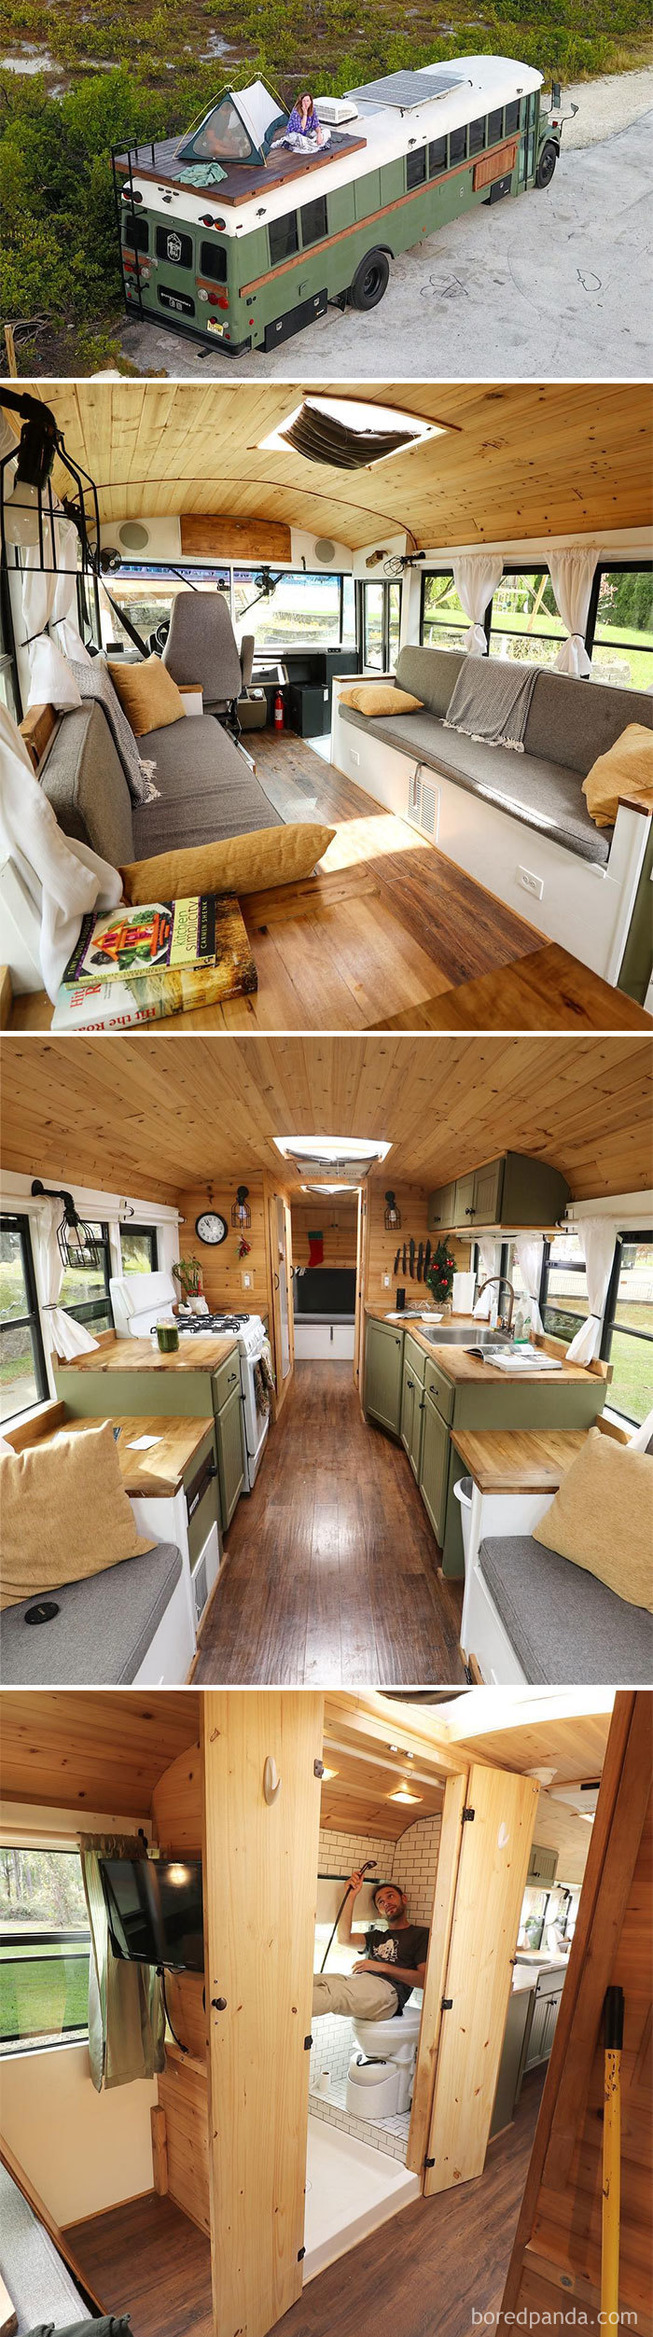 van-conversion-ideas-212-5cab597f59797__700